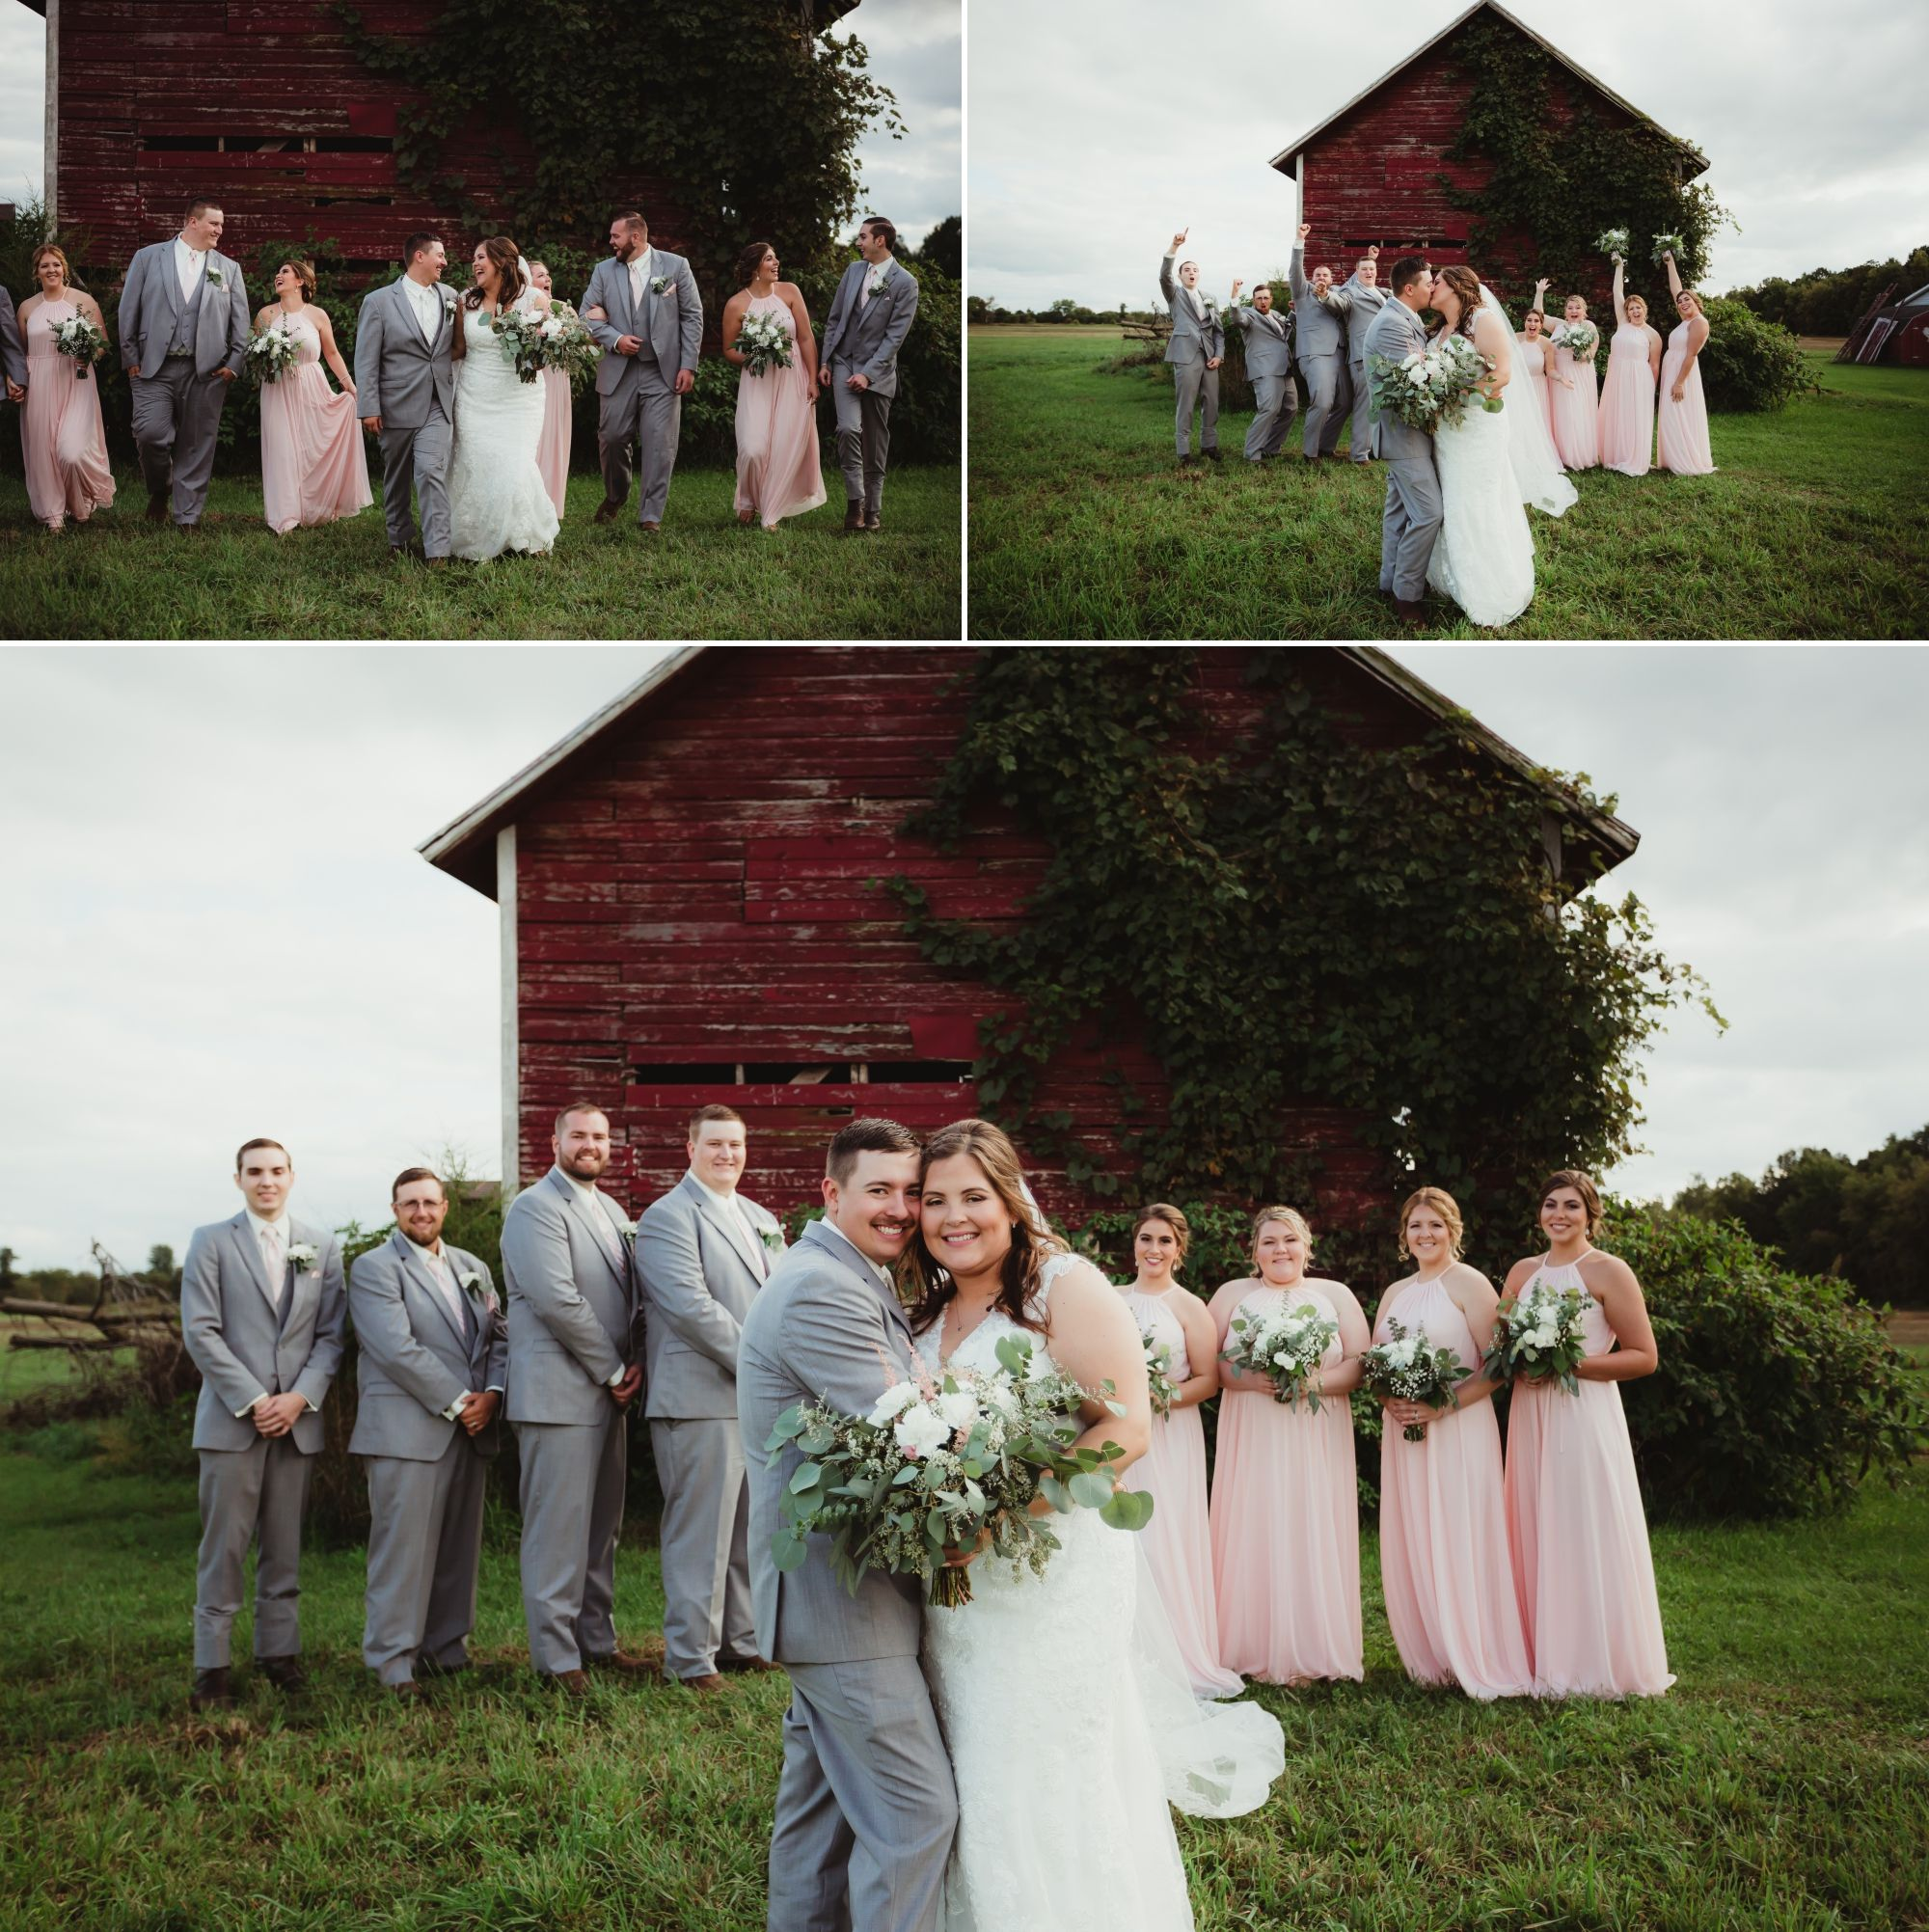 Wedding party posing in front of an old red barn.